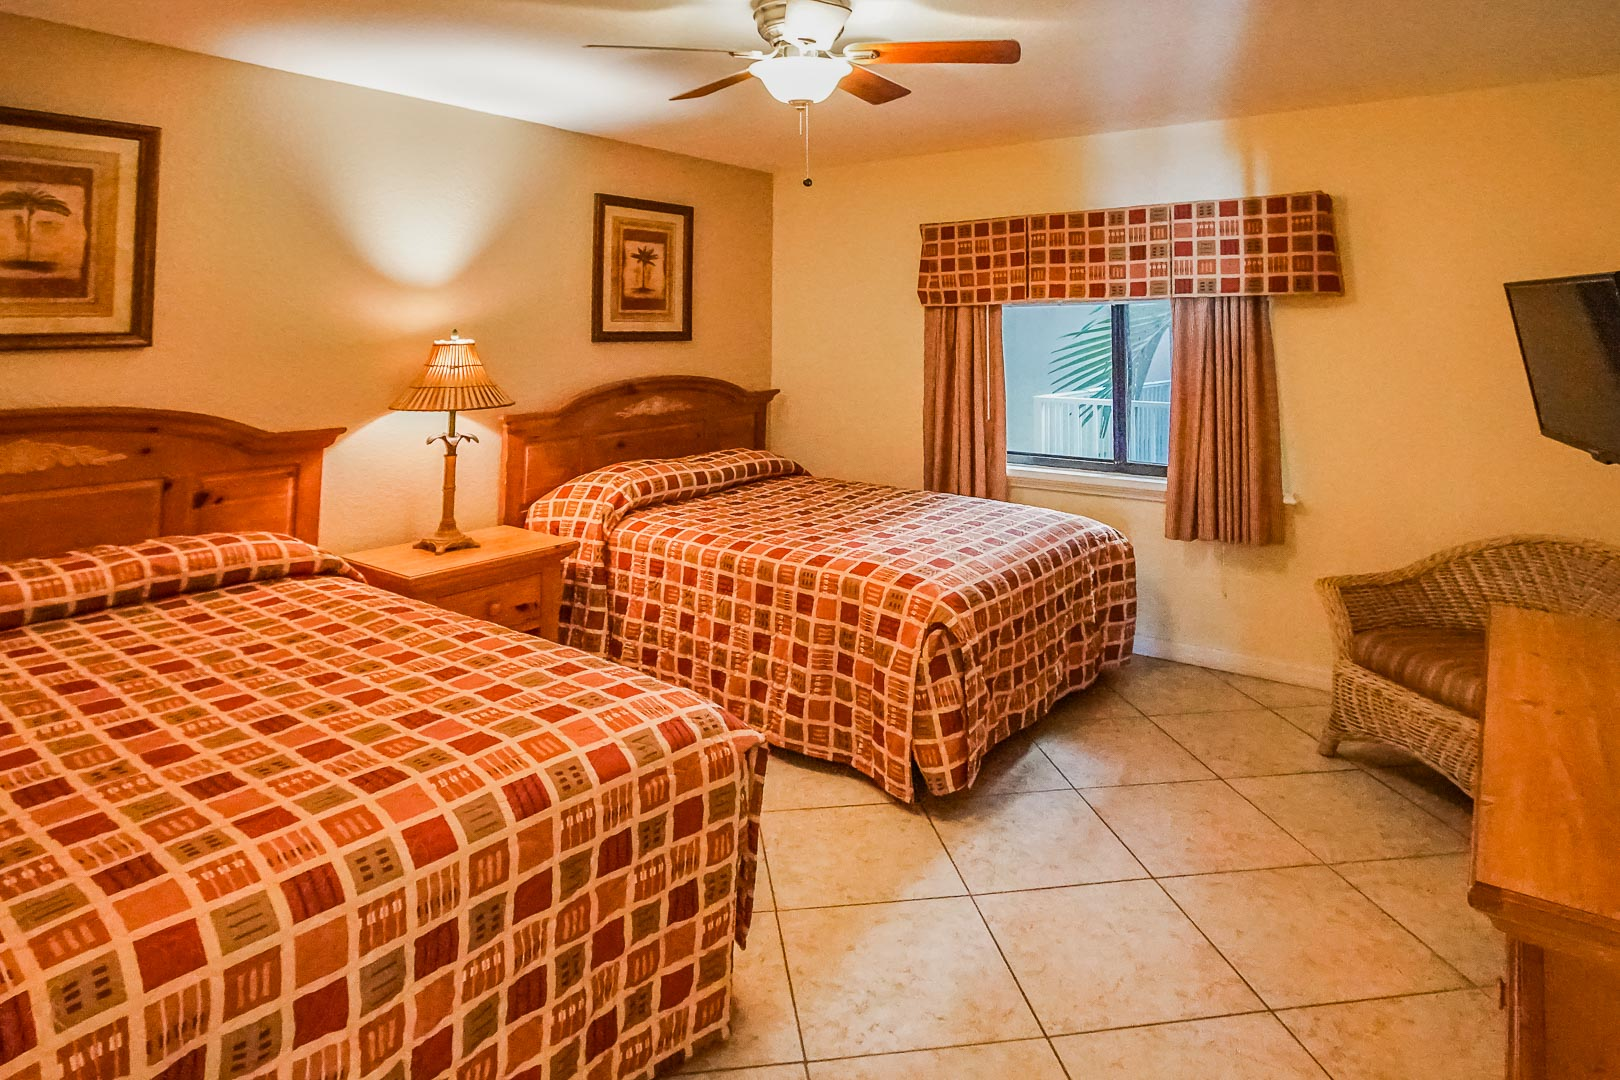 A bedroom with double beds at VRI's Sand Pebble Resort in Treasure Island, Florida.